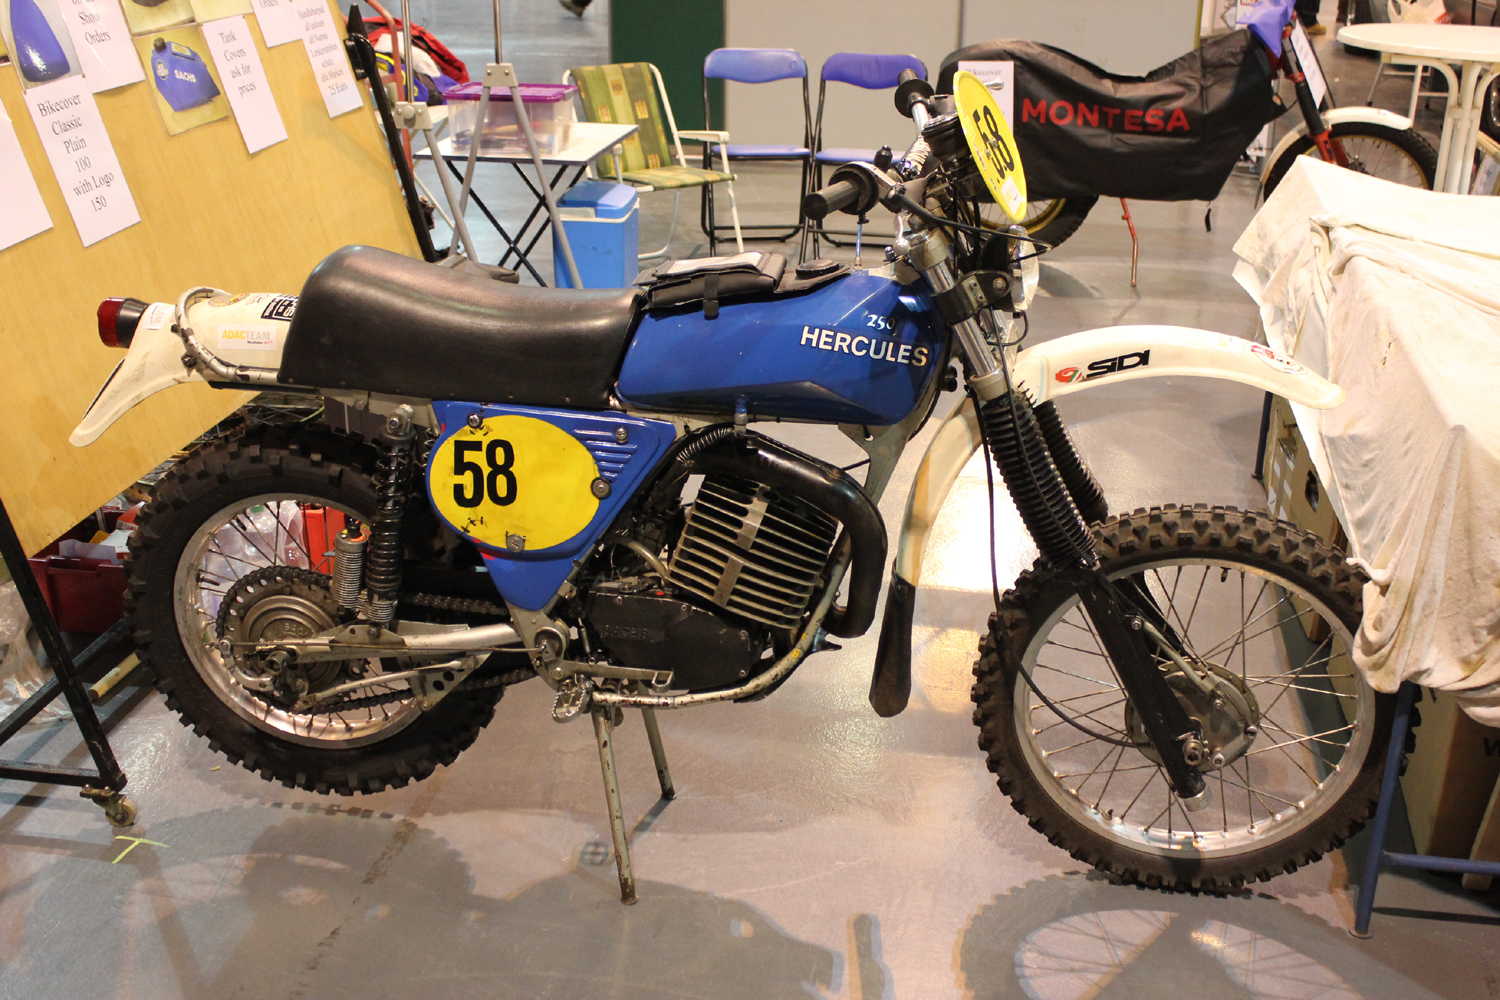 classicdirtbikerider.com-photo by Mr J-2015 Telford classic dirt bike show-1